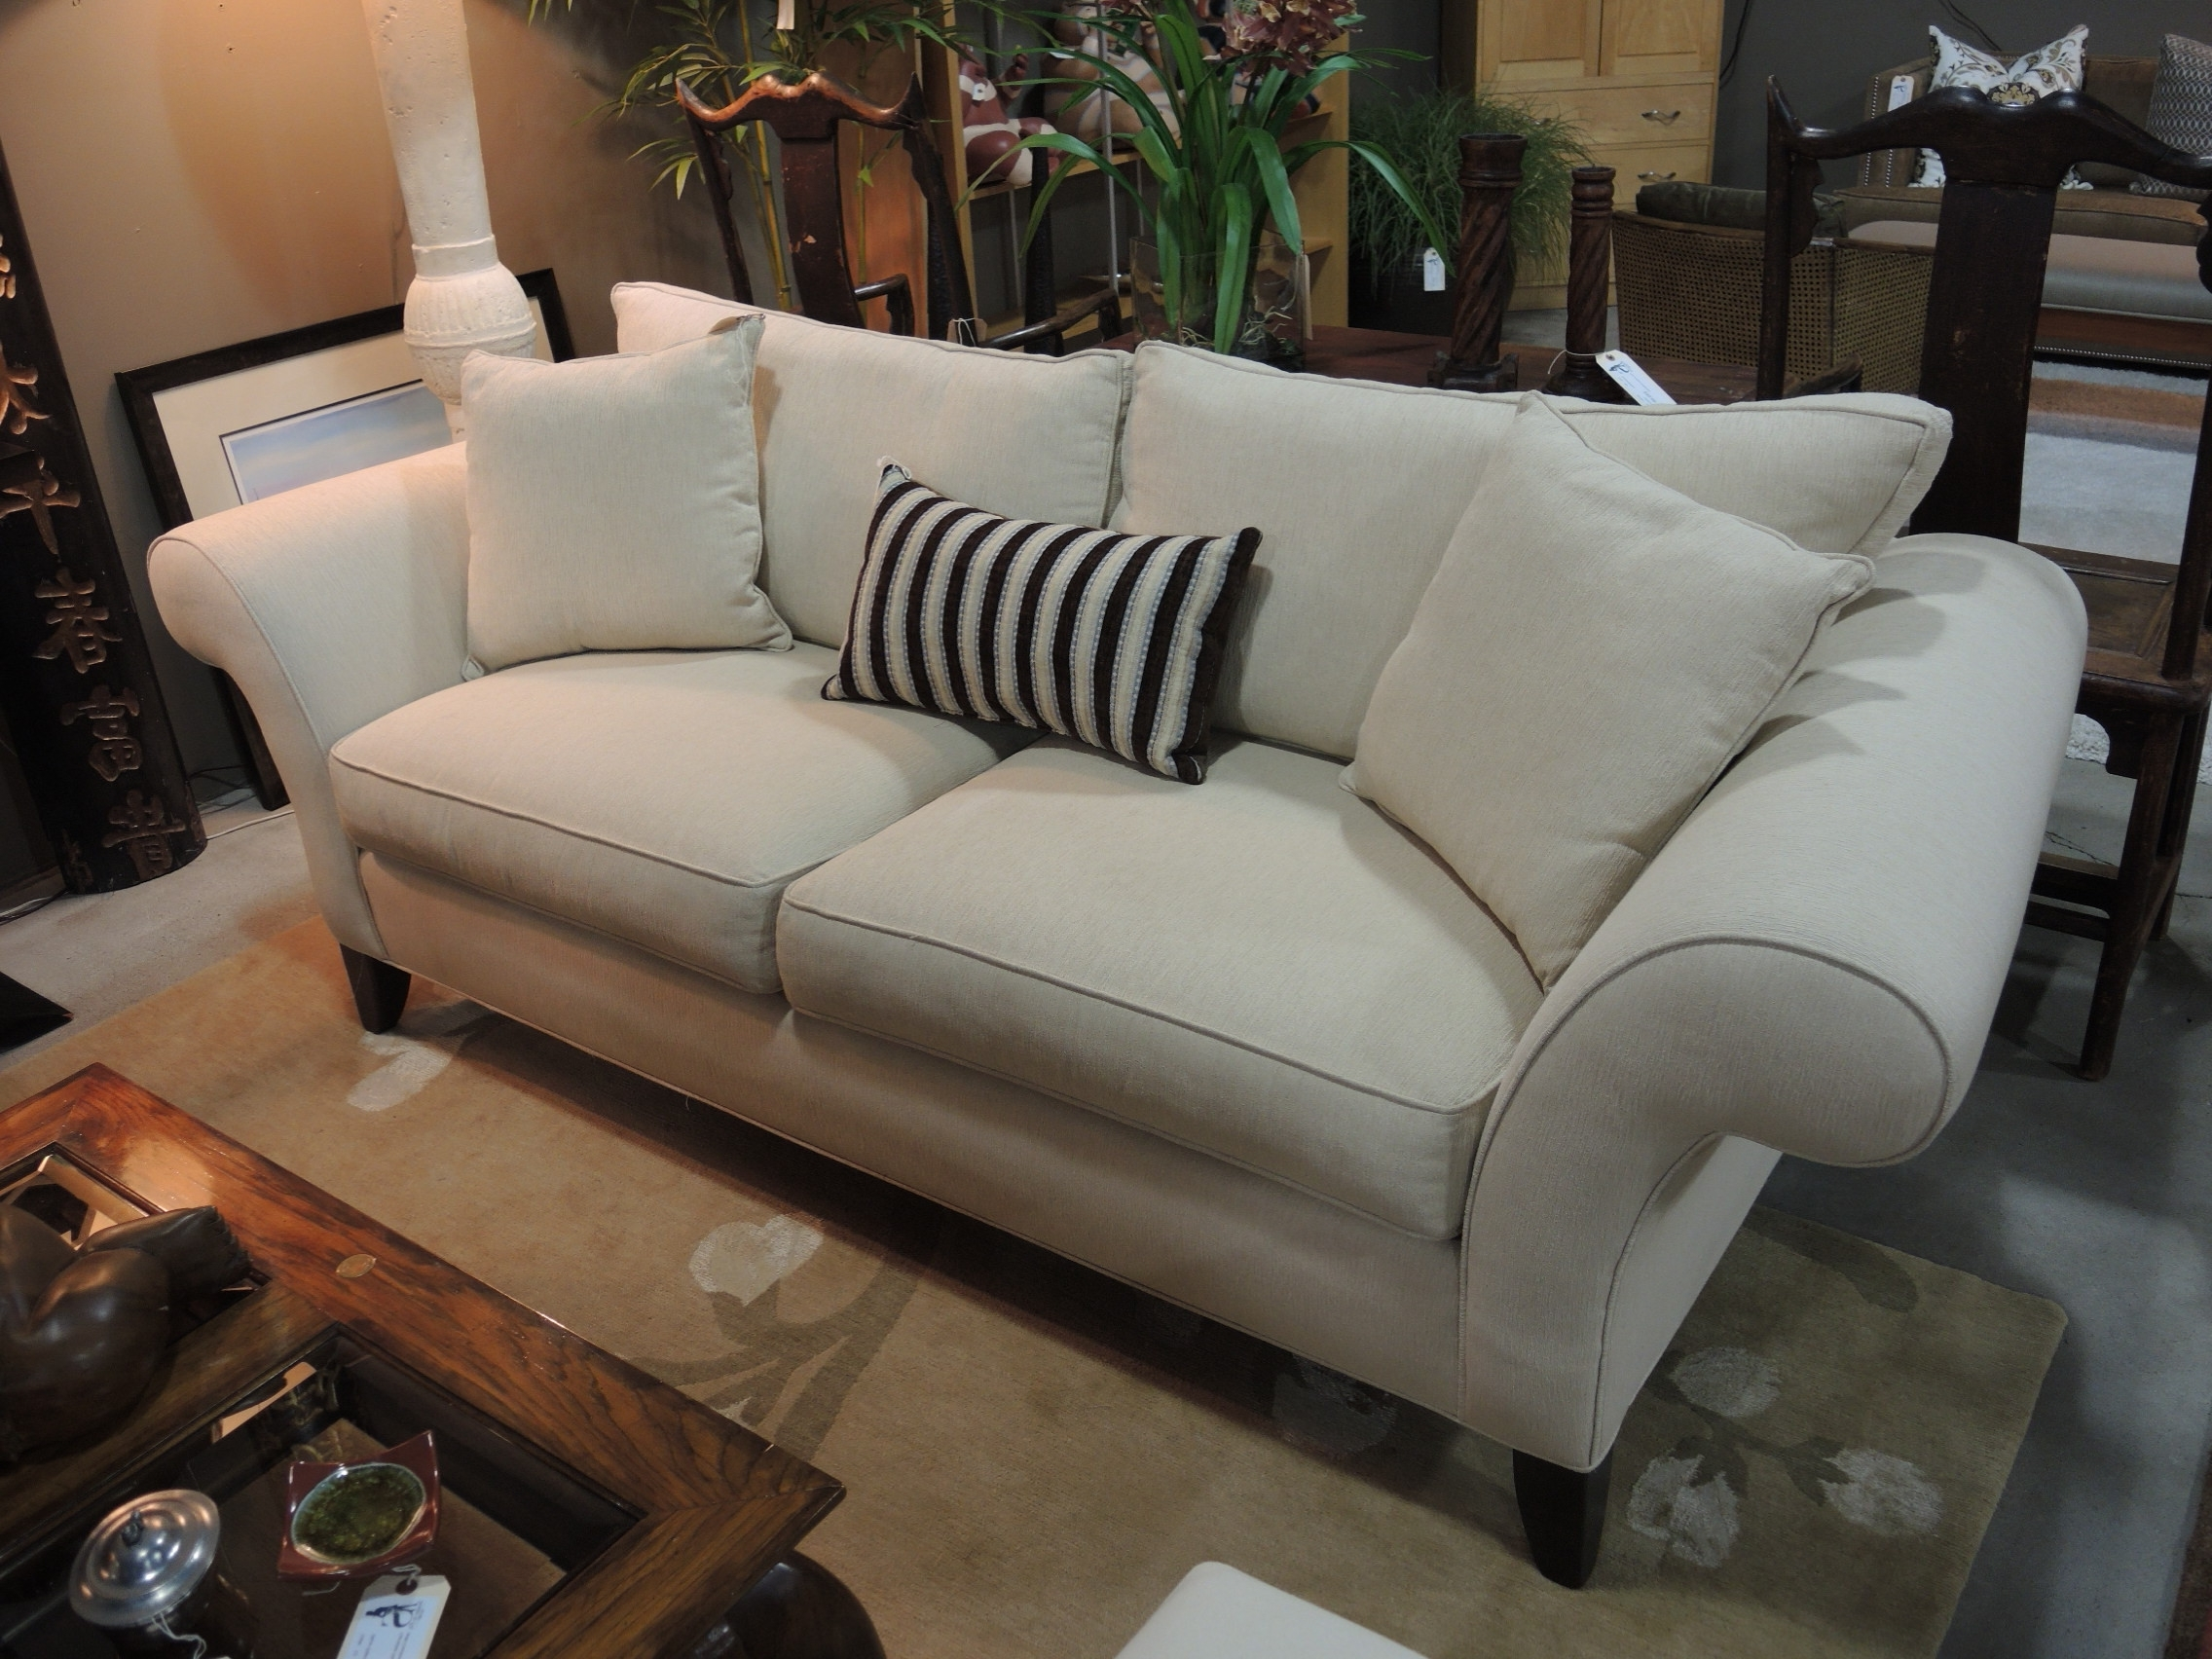 Duluth Mn Sectional Sofas Inside Recent Furniture : Ethan Allen Down Filled Sofa Beautiful Sectional Sofas (View 5 of 15)